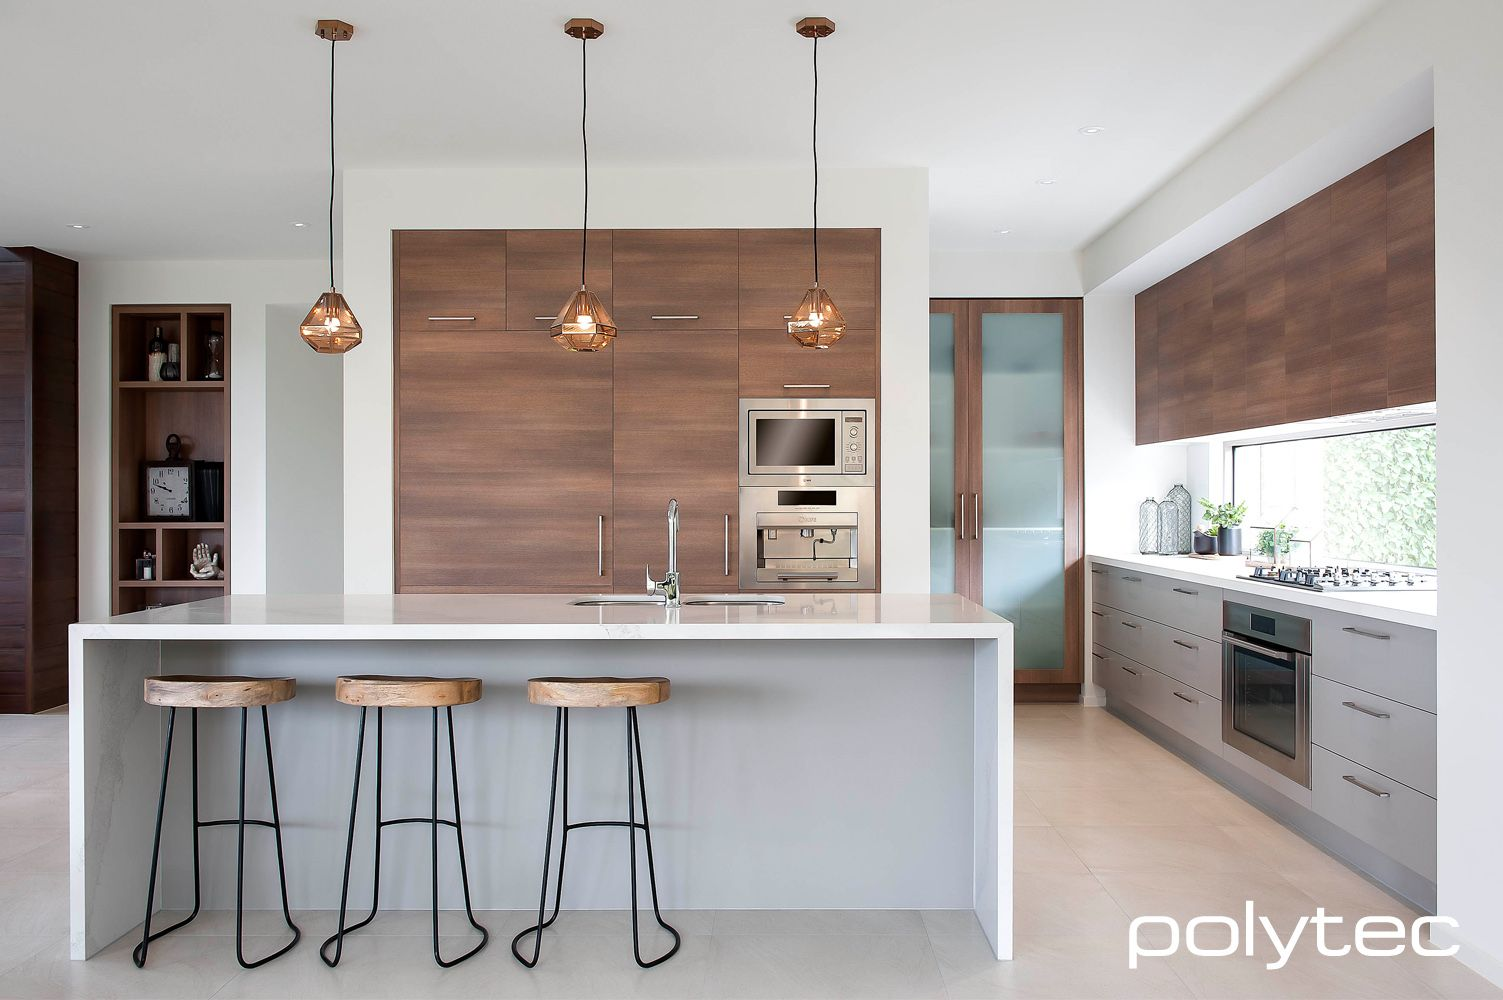 Fantastic looking kitchen display of polytec doors and for Kitchen display